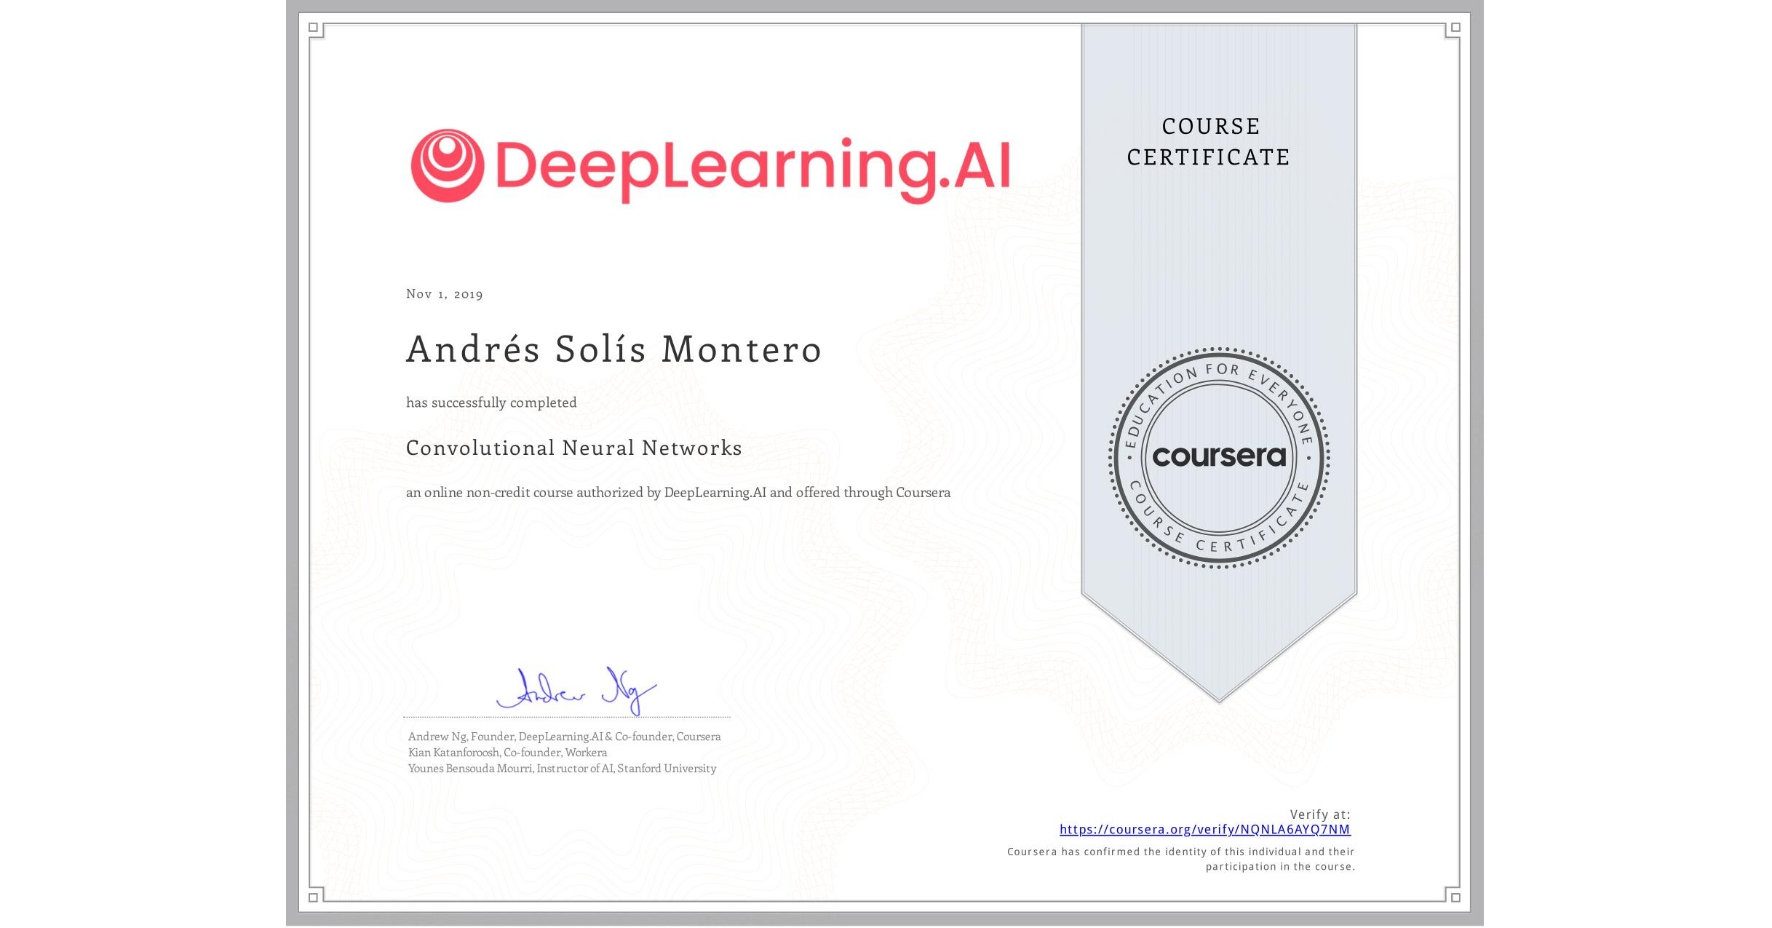 View certificate for Andrés Solís Montero, Convolutional Neural Networks, an online non-credit course authorized by DeepLearning.AI and offered through Coursera